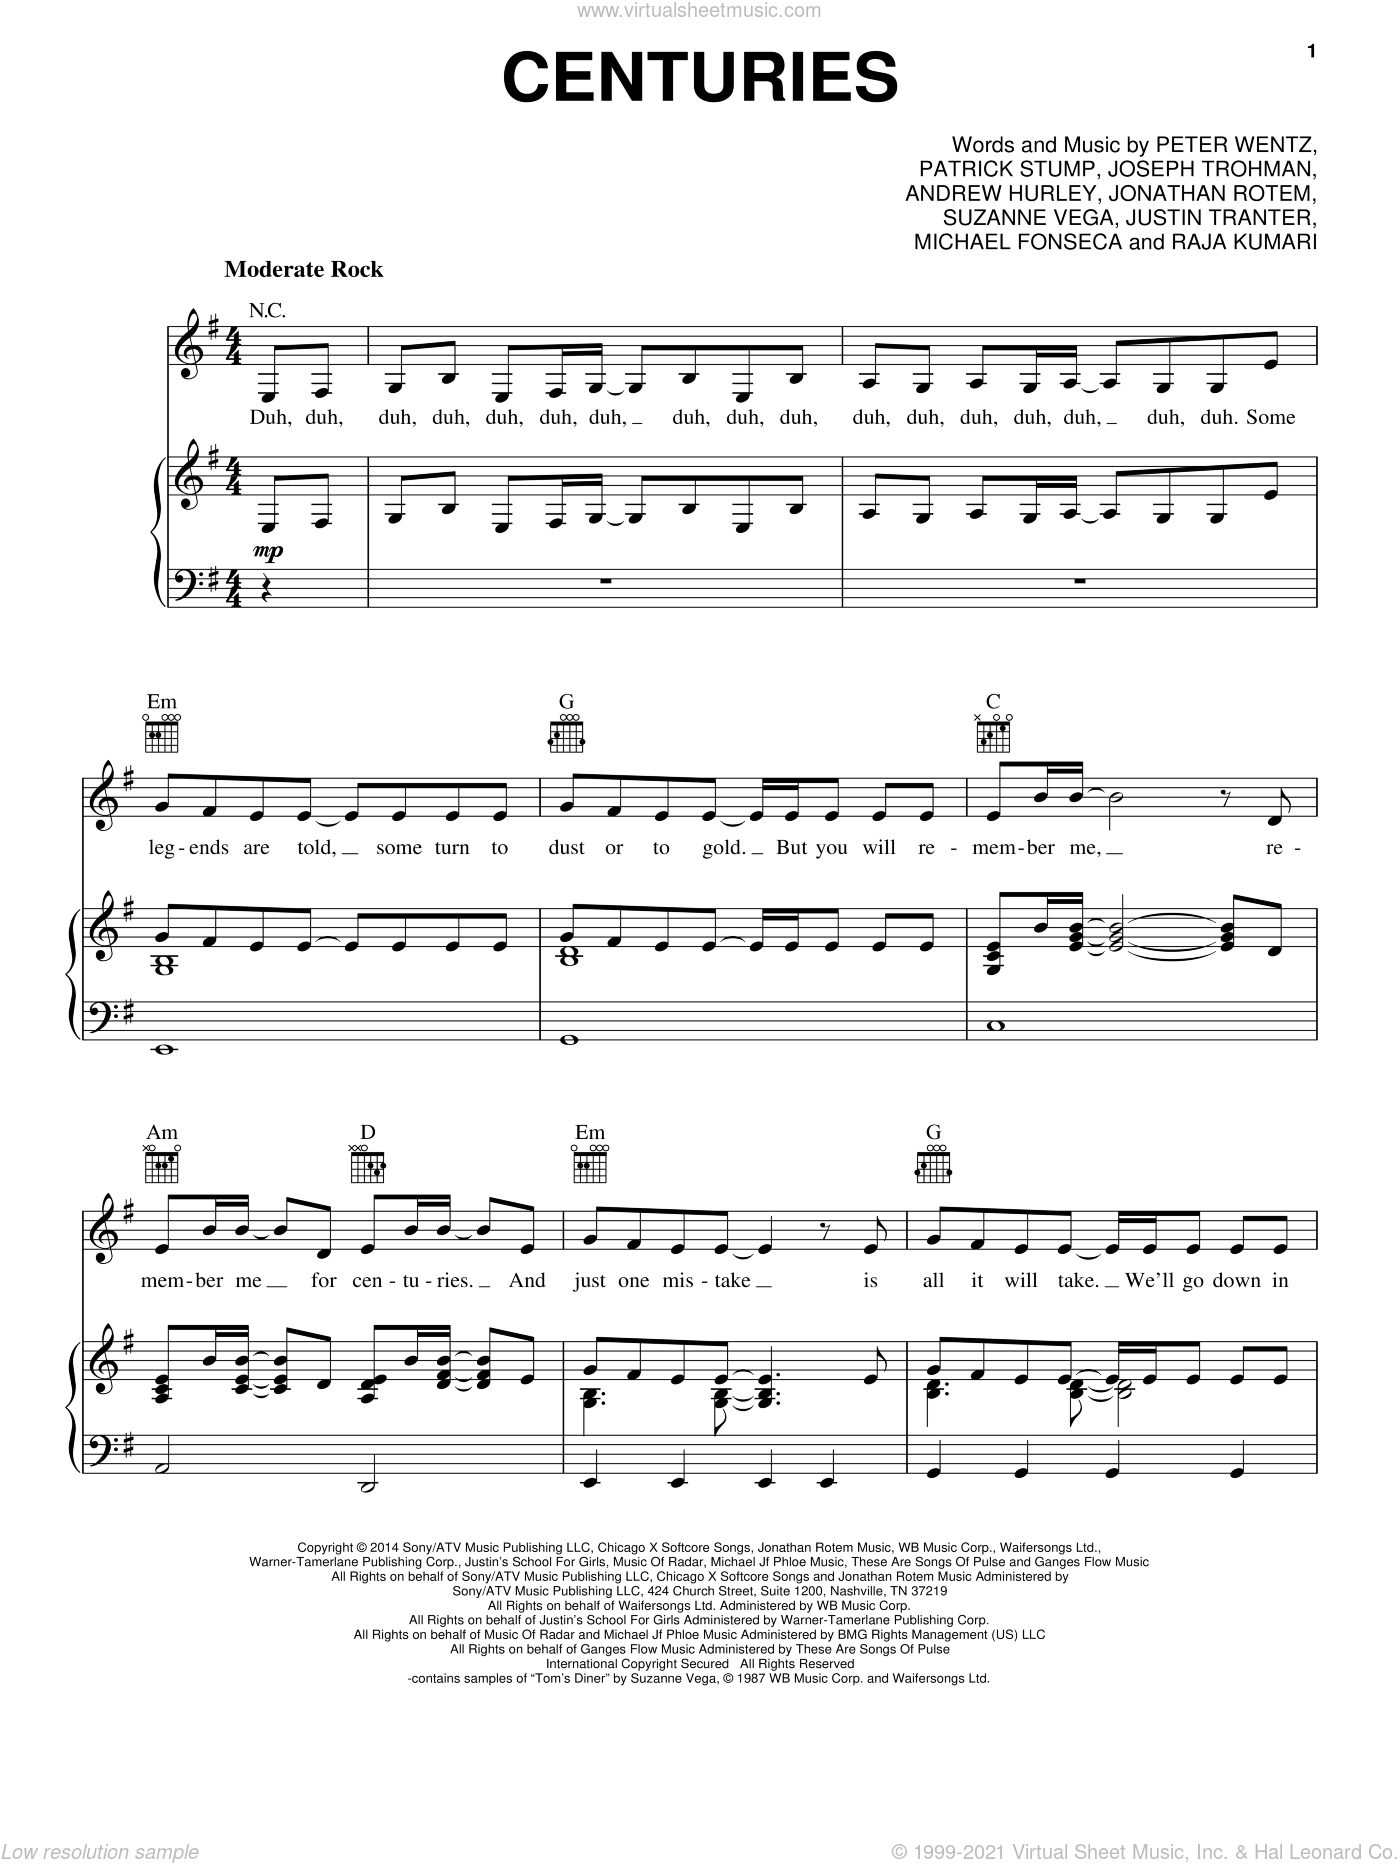 Centuries sheet music for voice, piano or guitar by Fall Out Boy, Andrew Hurley, Jonathan Rotem, Joseph Trohman, Justin Tranter, Michael Fonesca, Patrick Stump, Peter Wentz, Raja Kumari and Suzanne Vega, intermediate skill level